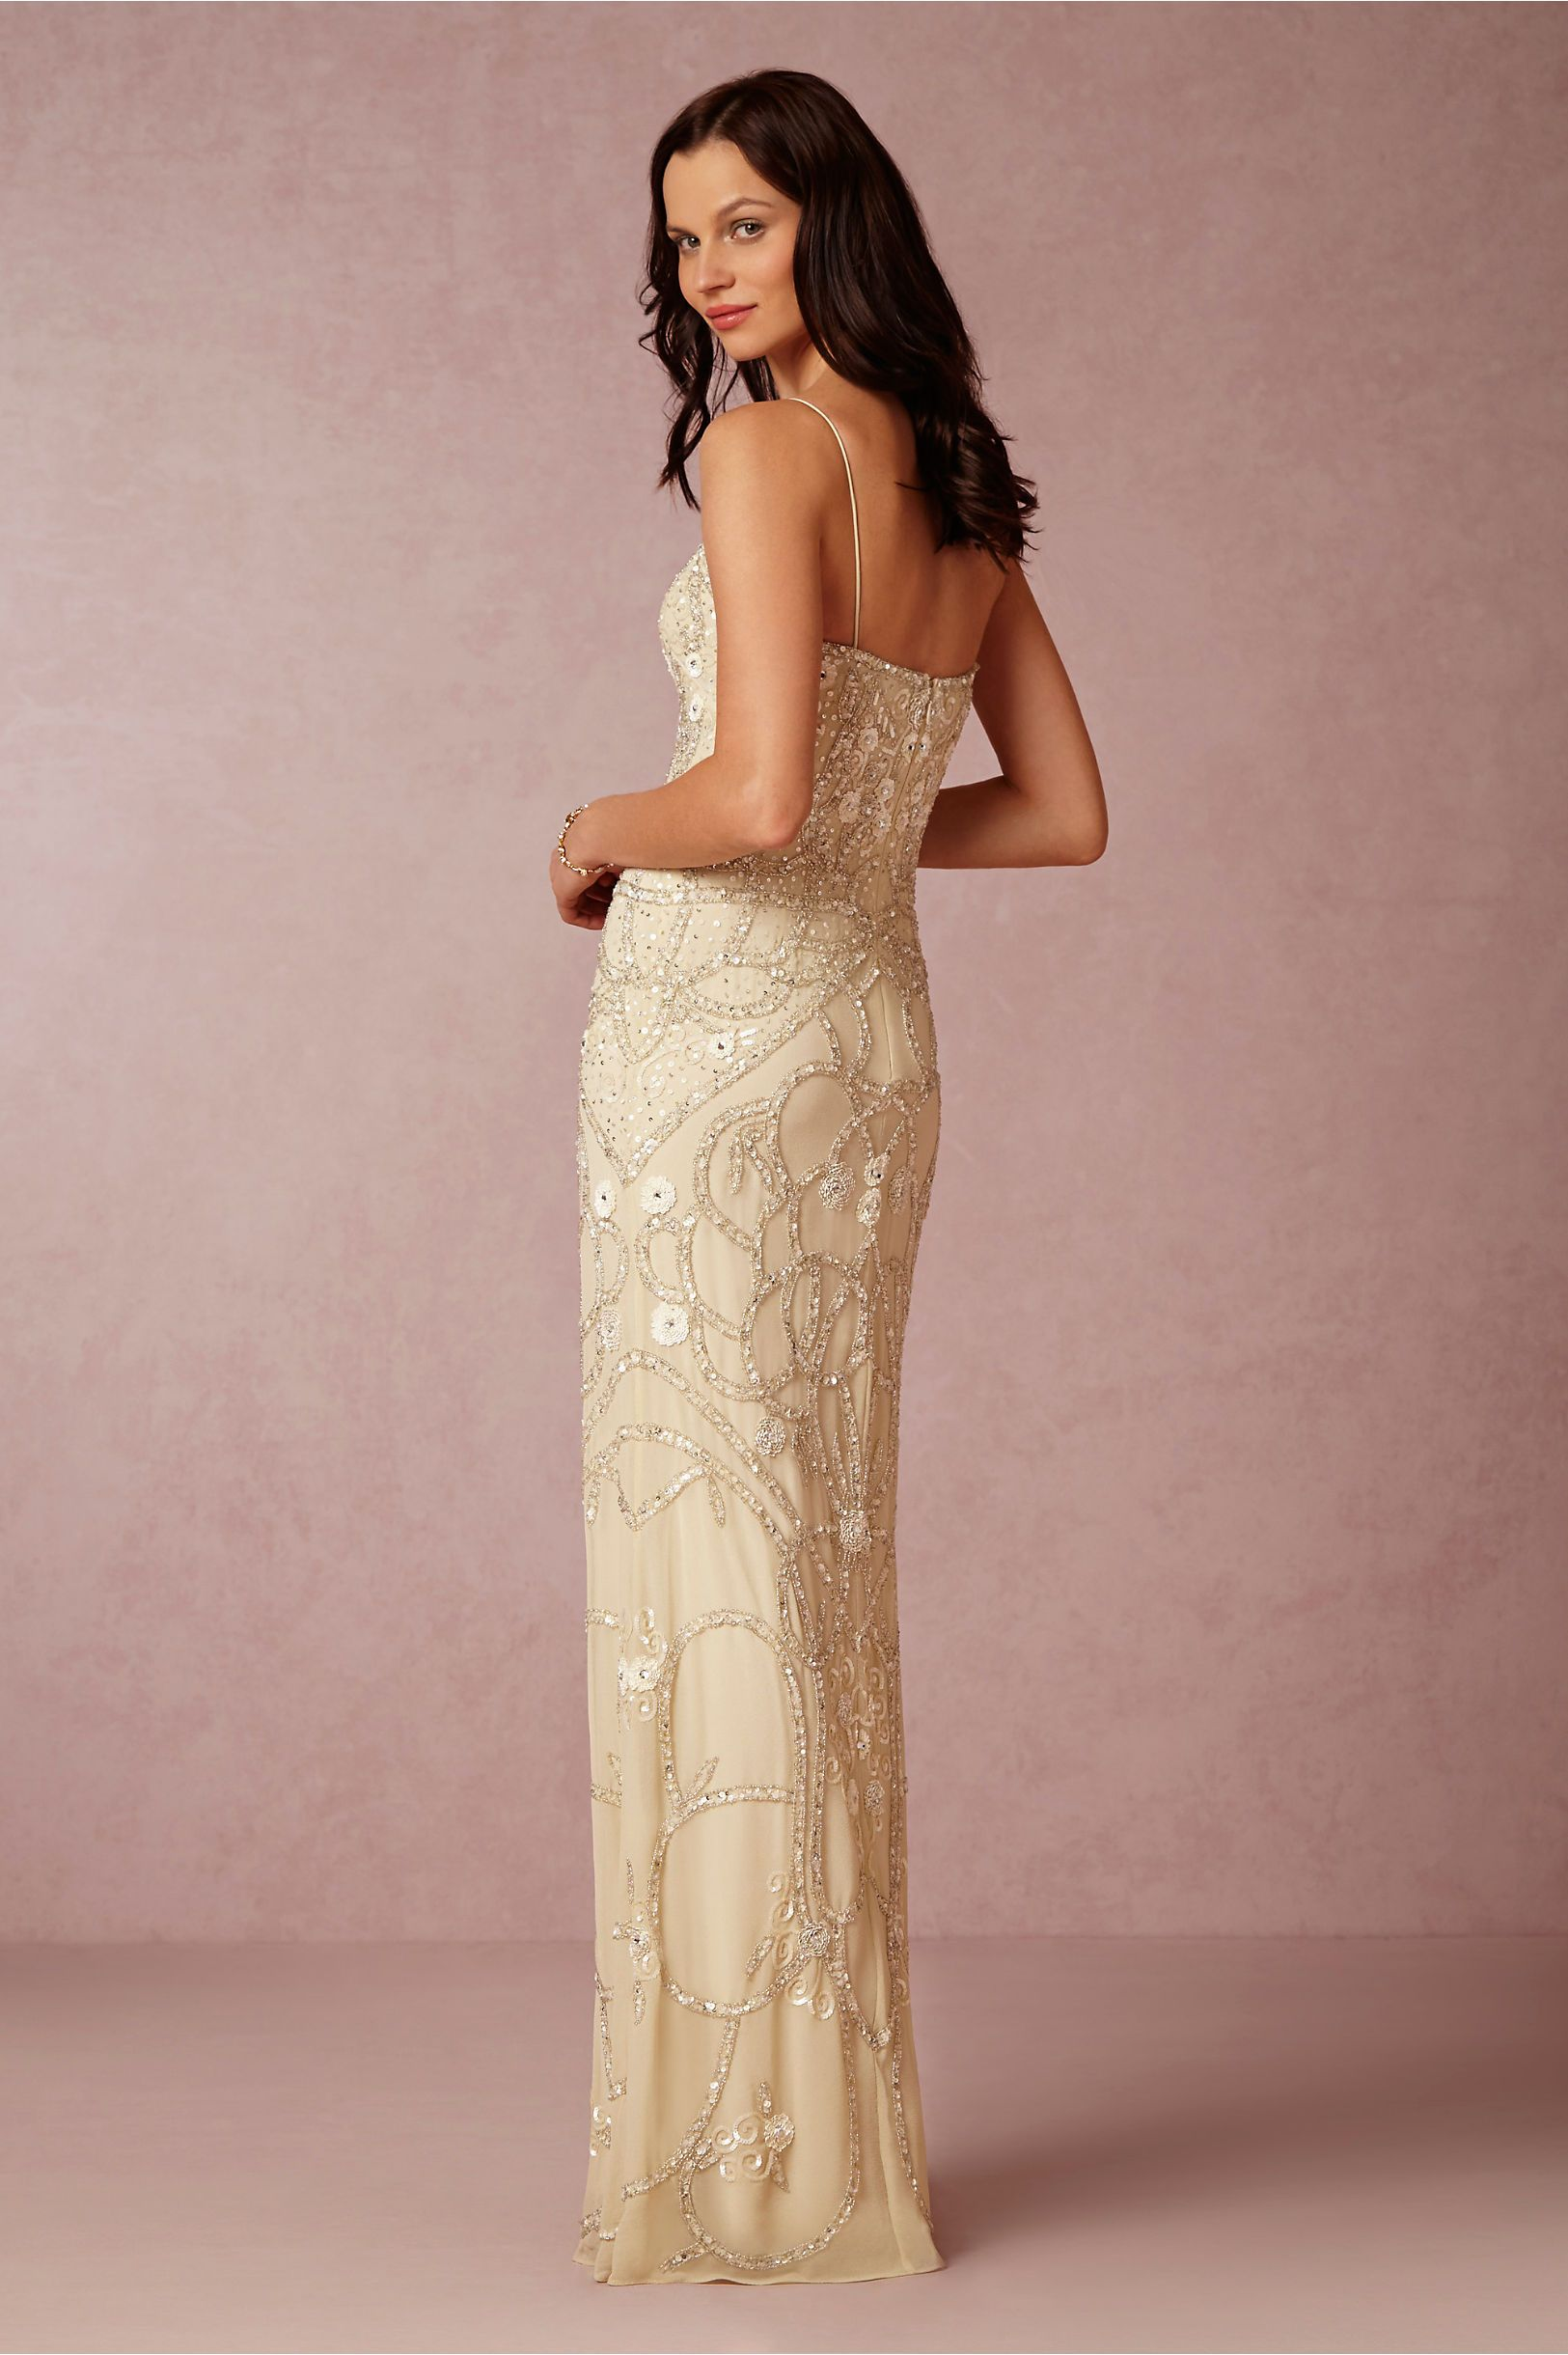 Aria Gown in Sale Wedding Dresses at BHLDN | Gold | Pinterest ...